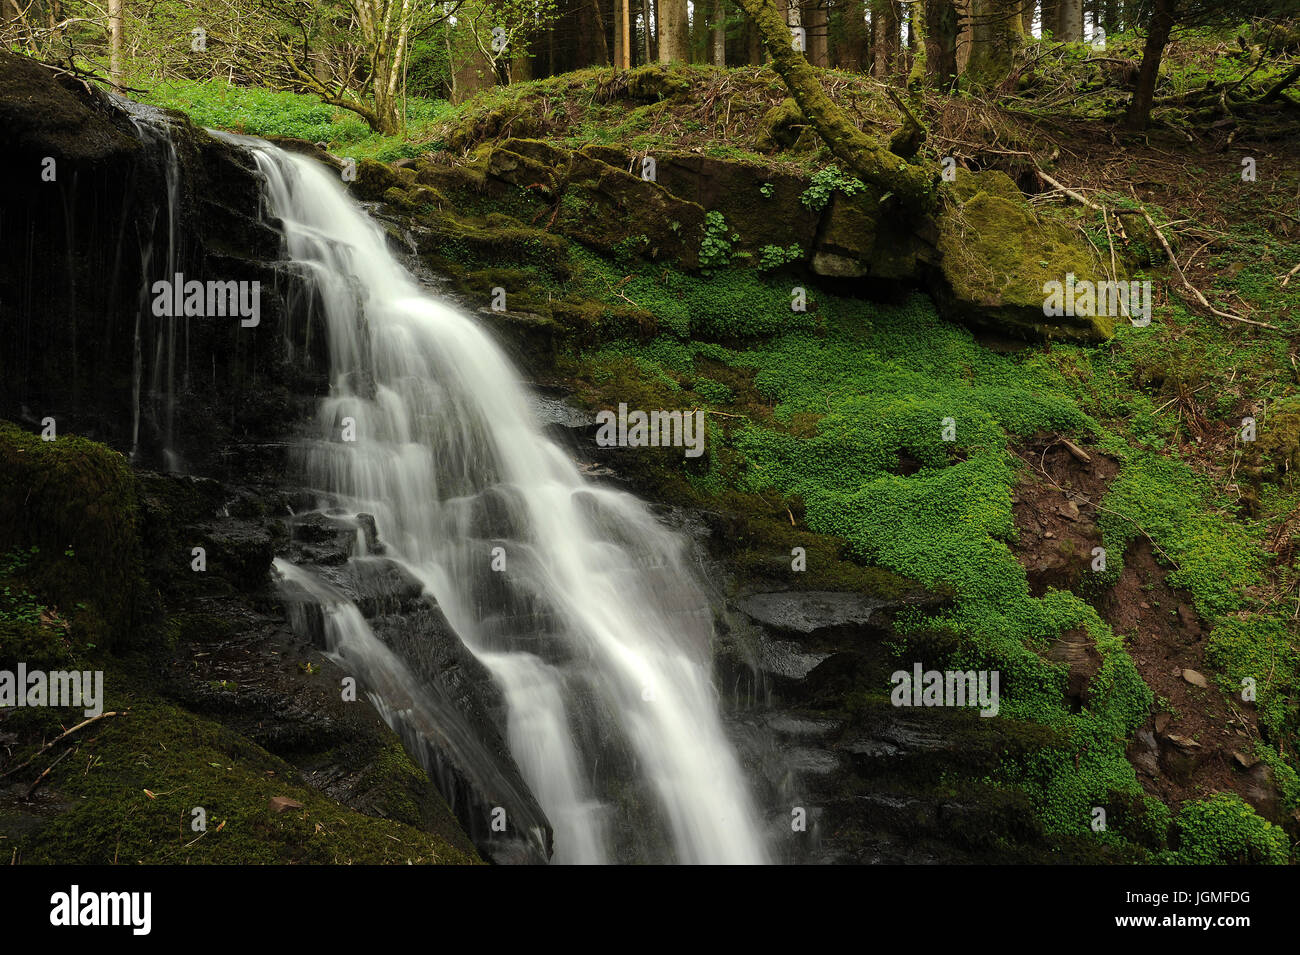 Small Waterfall on the Nant Bwrefwr, Brecon Beacons. - Stock Image